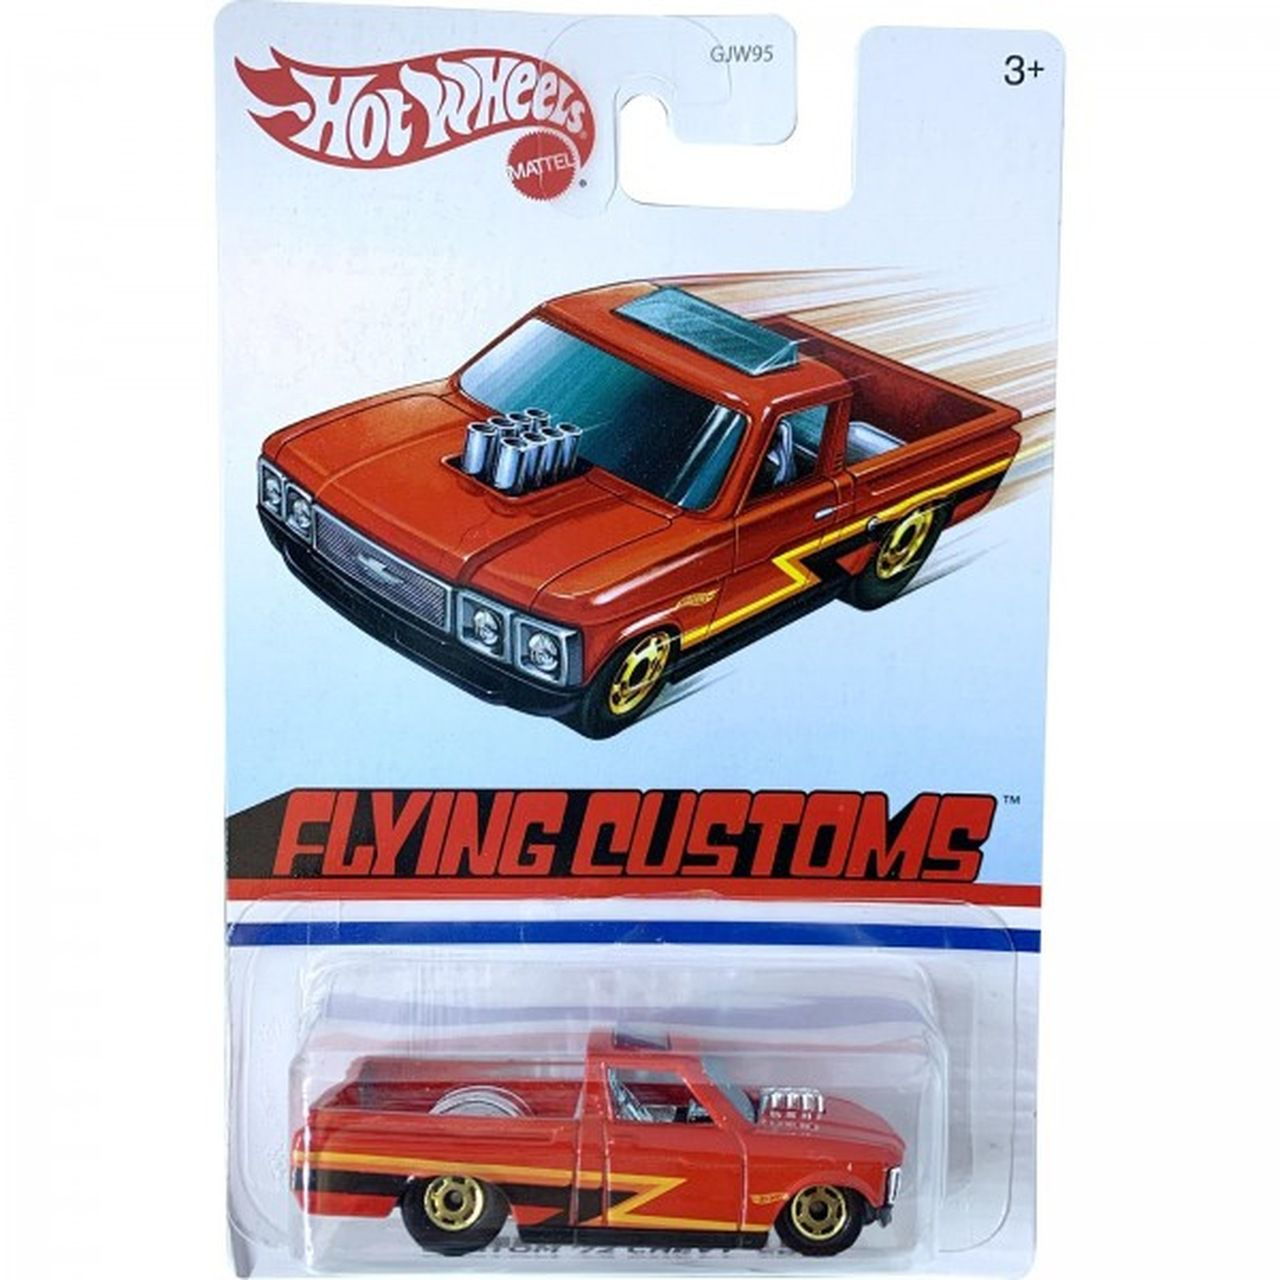 Carrinho Custom '72 Chevy Luv (Flying Customs) GJW95 - Hot Wheels